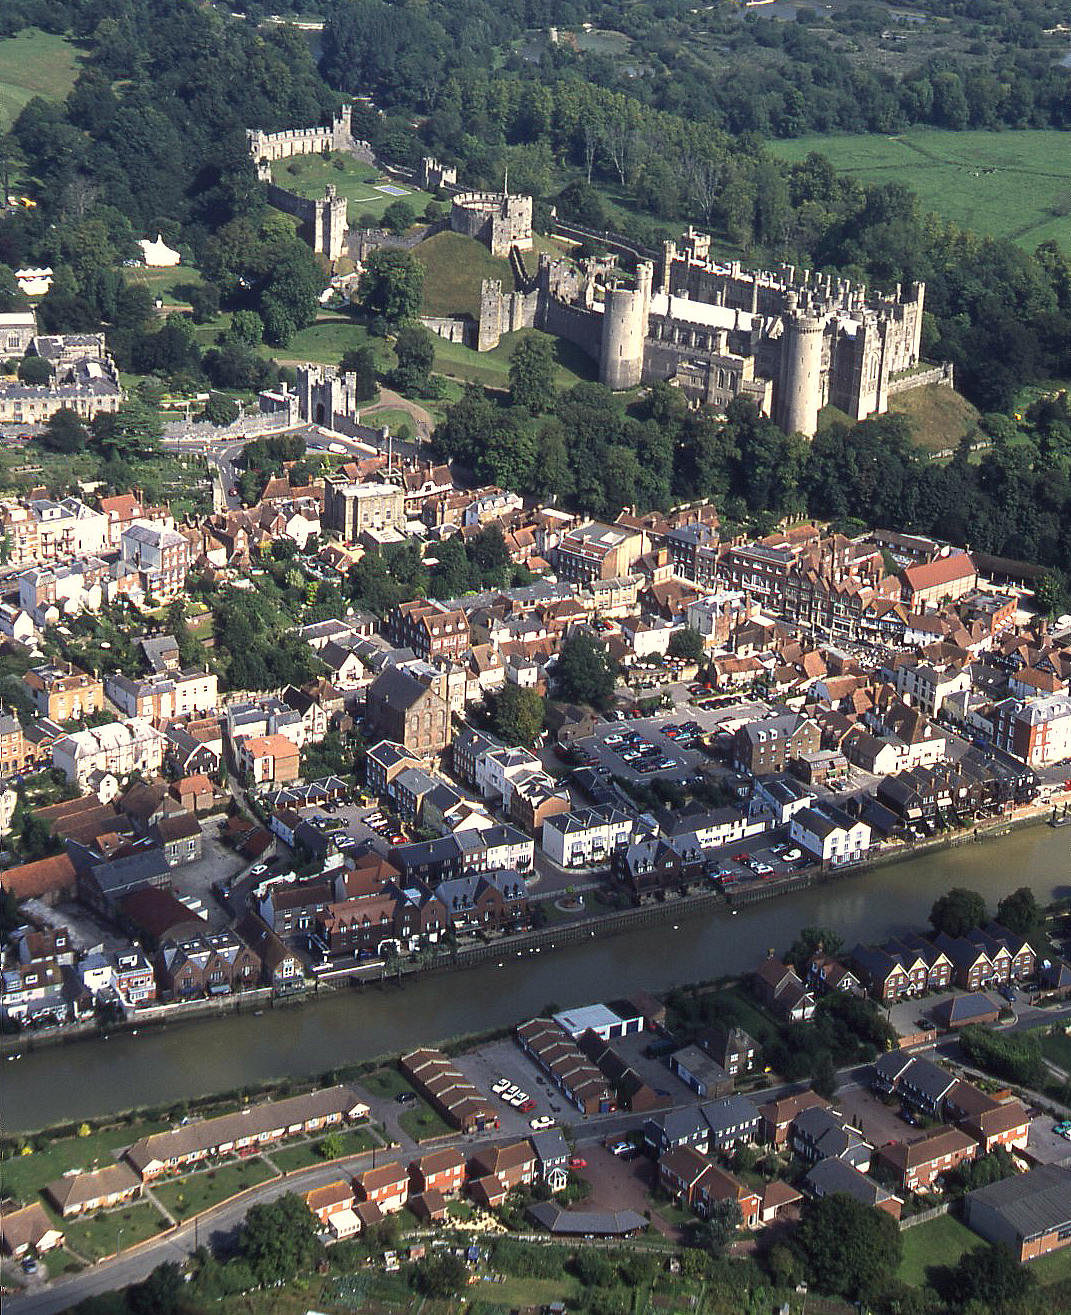 Arundel and castle beyond in 2001